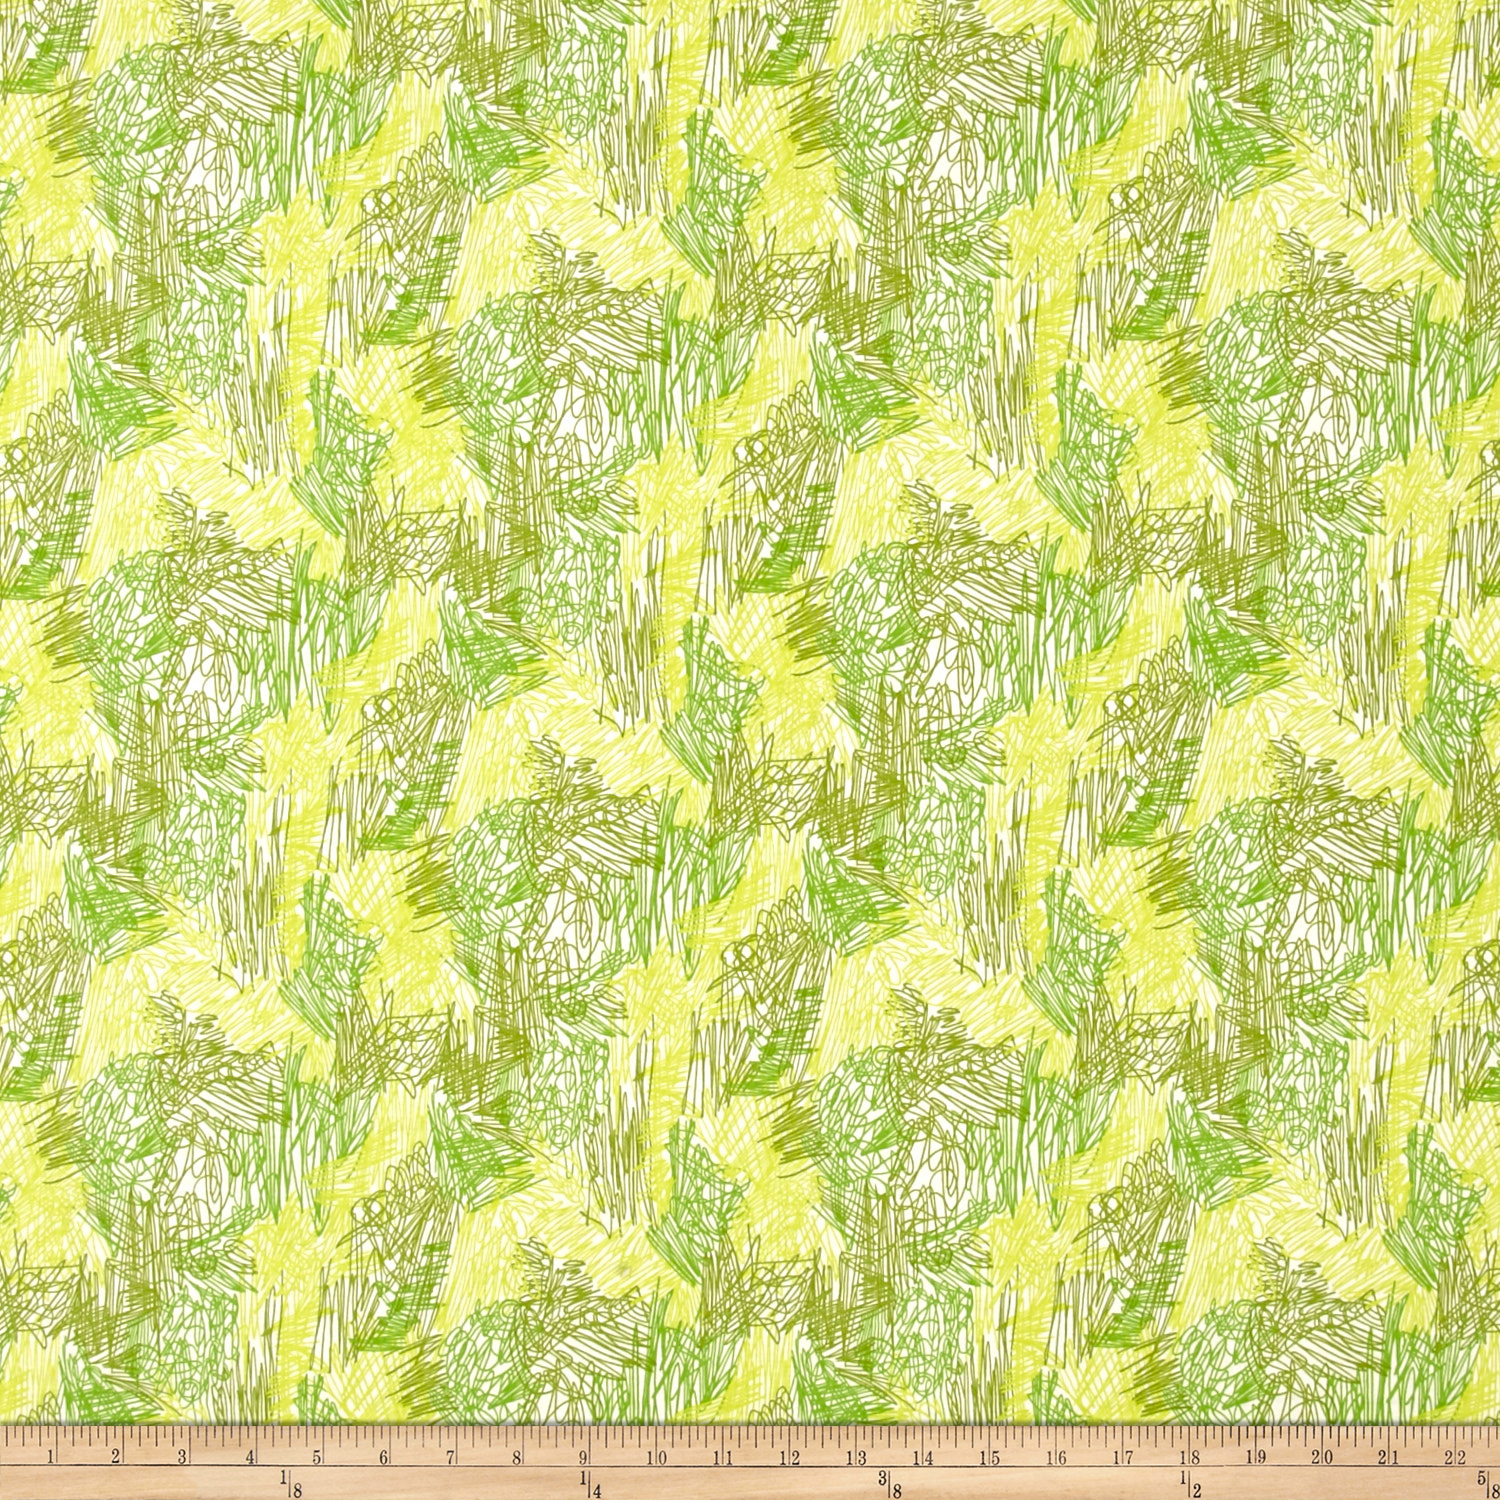 Bow Wow Wow Scritch Scratch Lime Fabric by Alexander Henry in USA